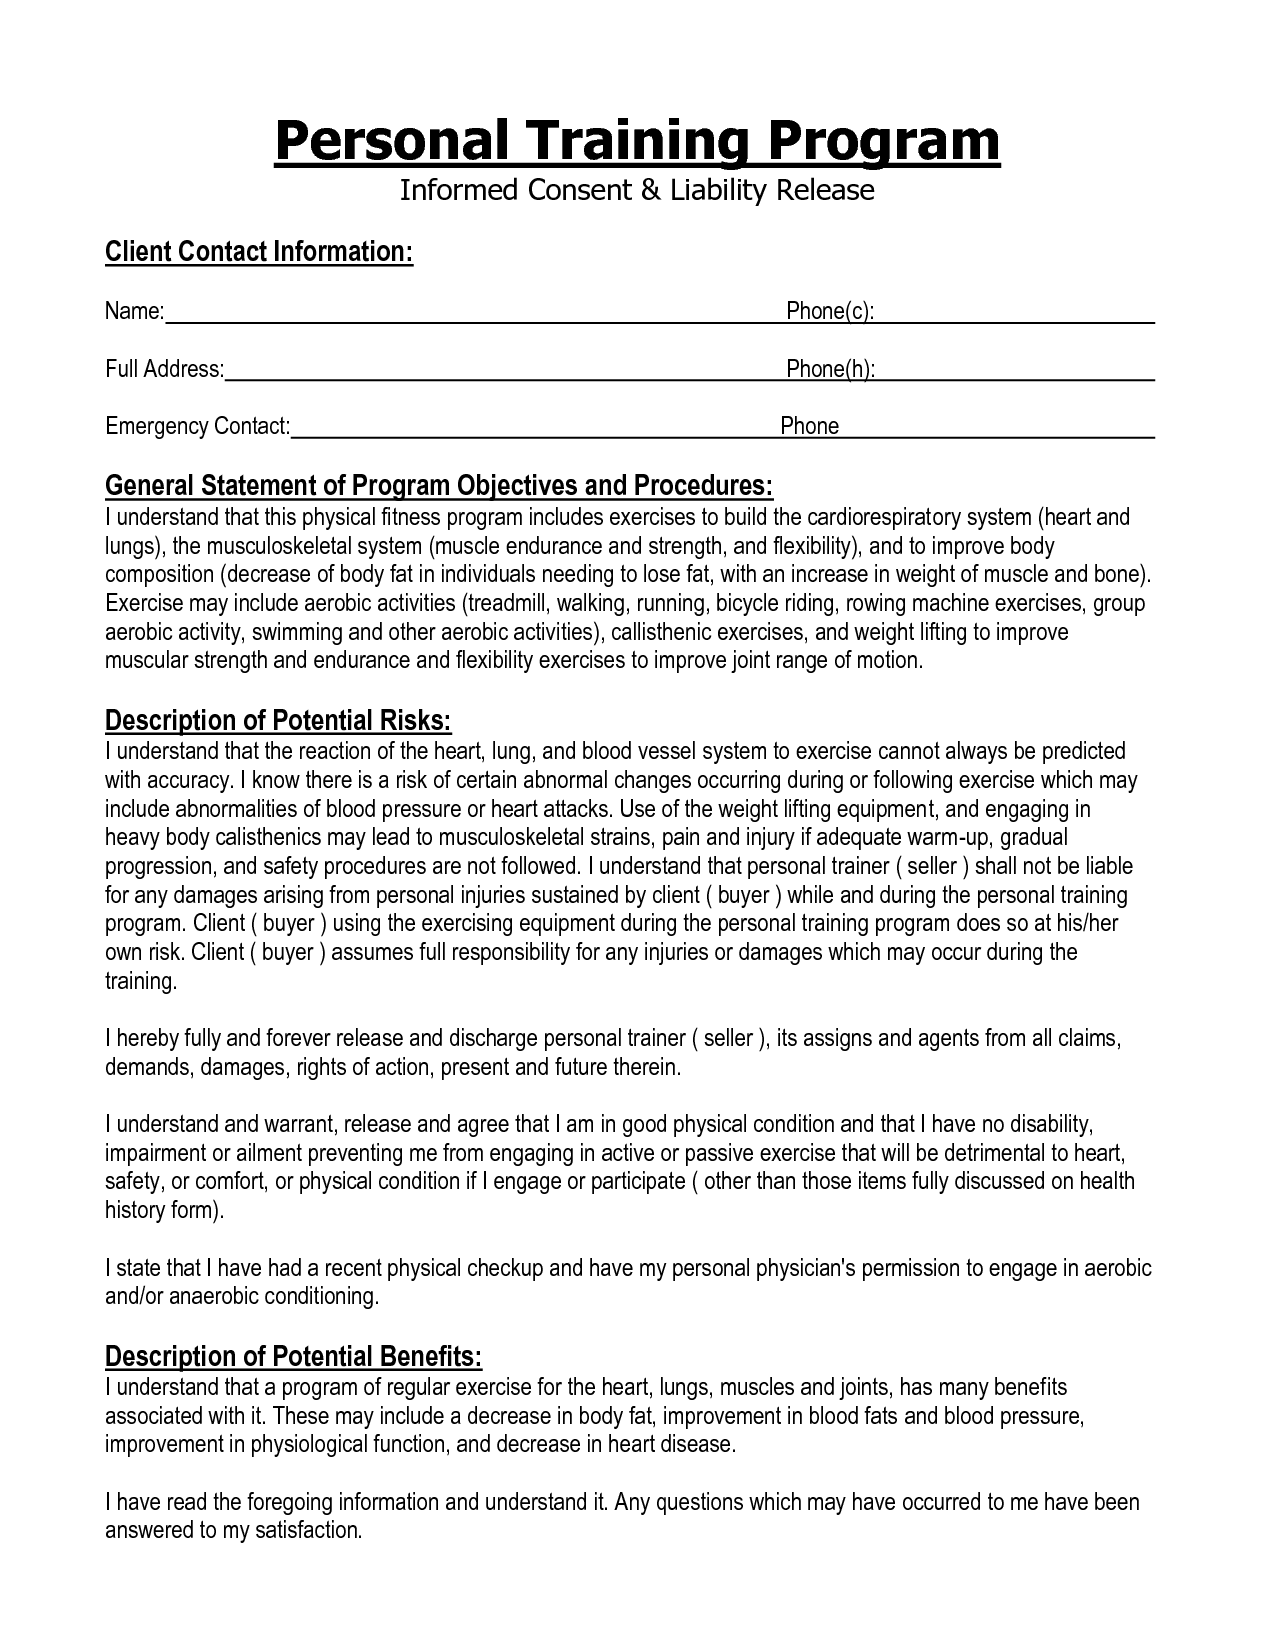 informed consent form personal training - Google Search | Health and ...